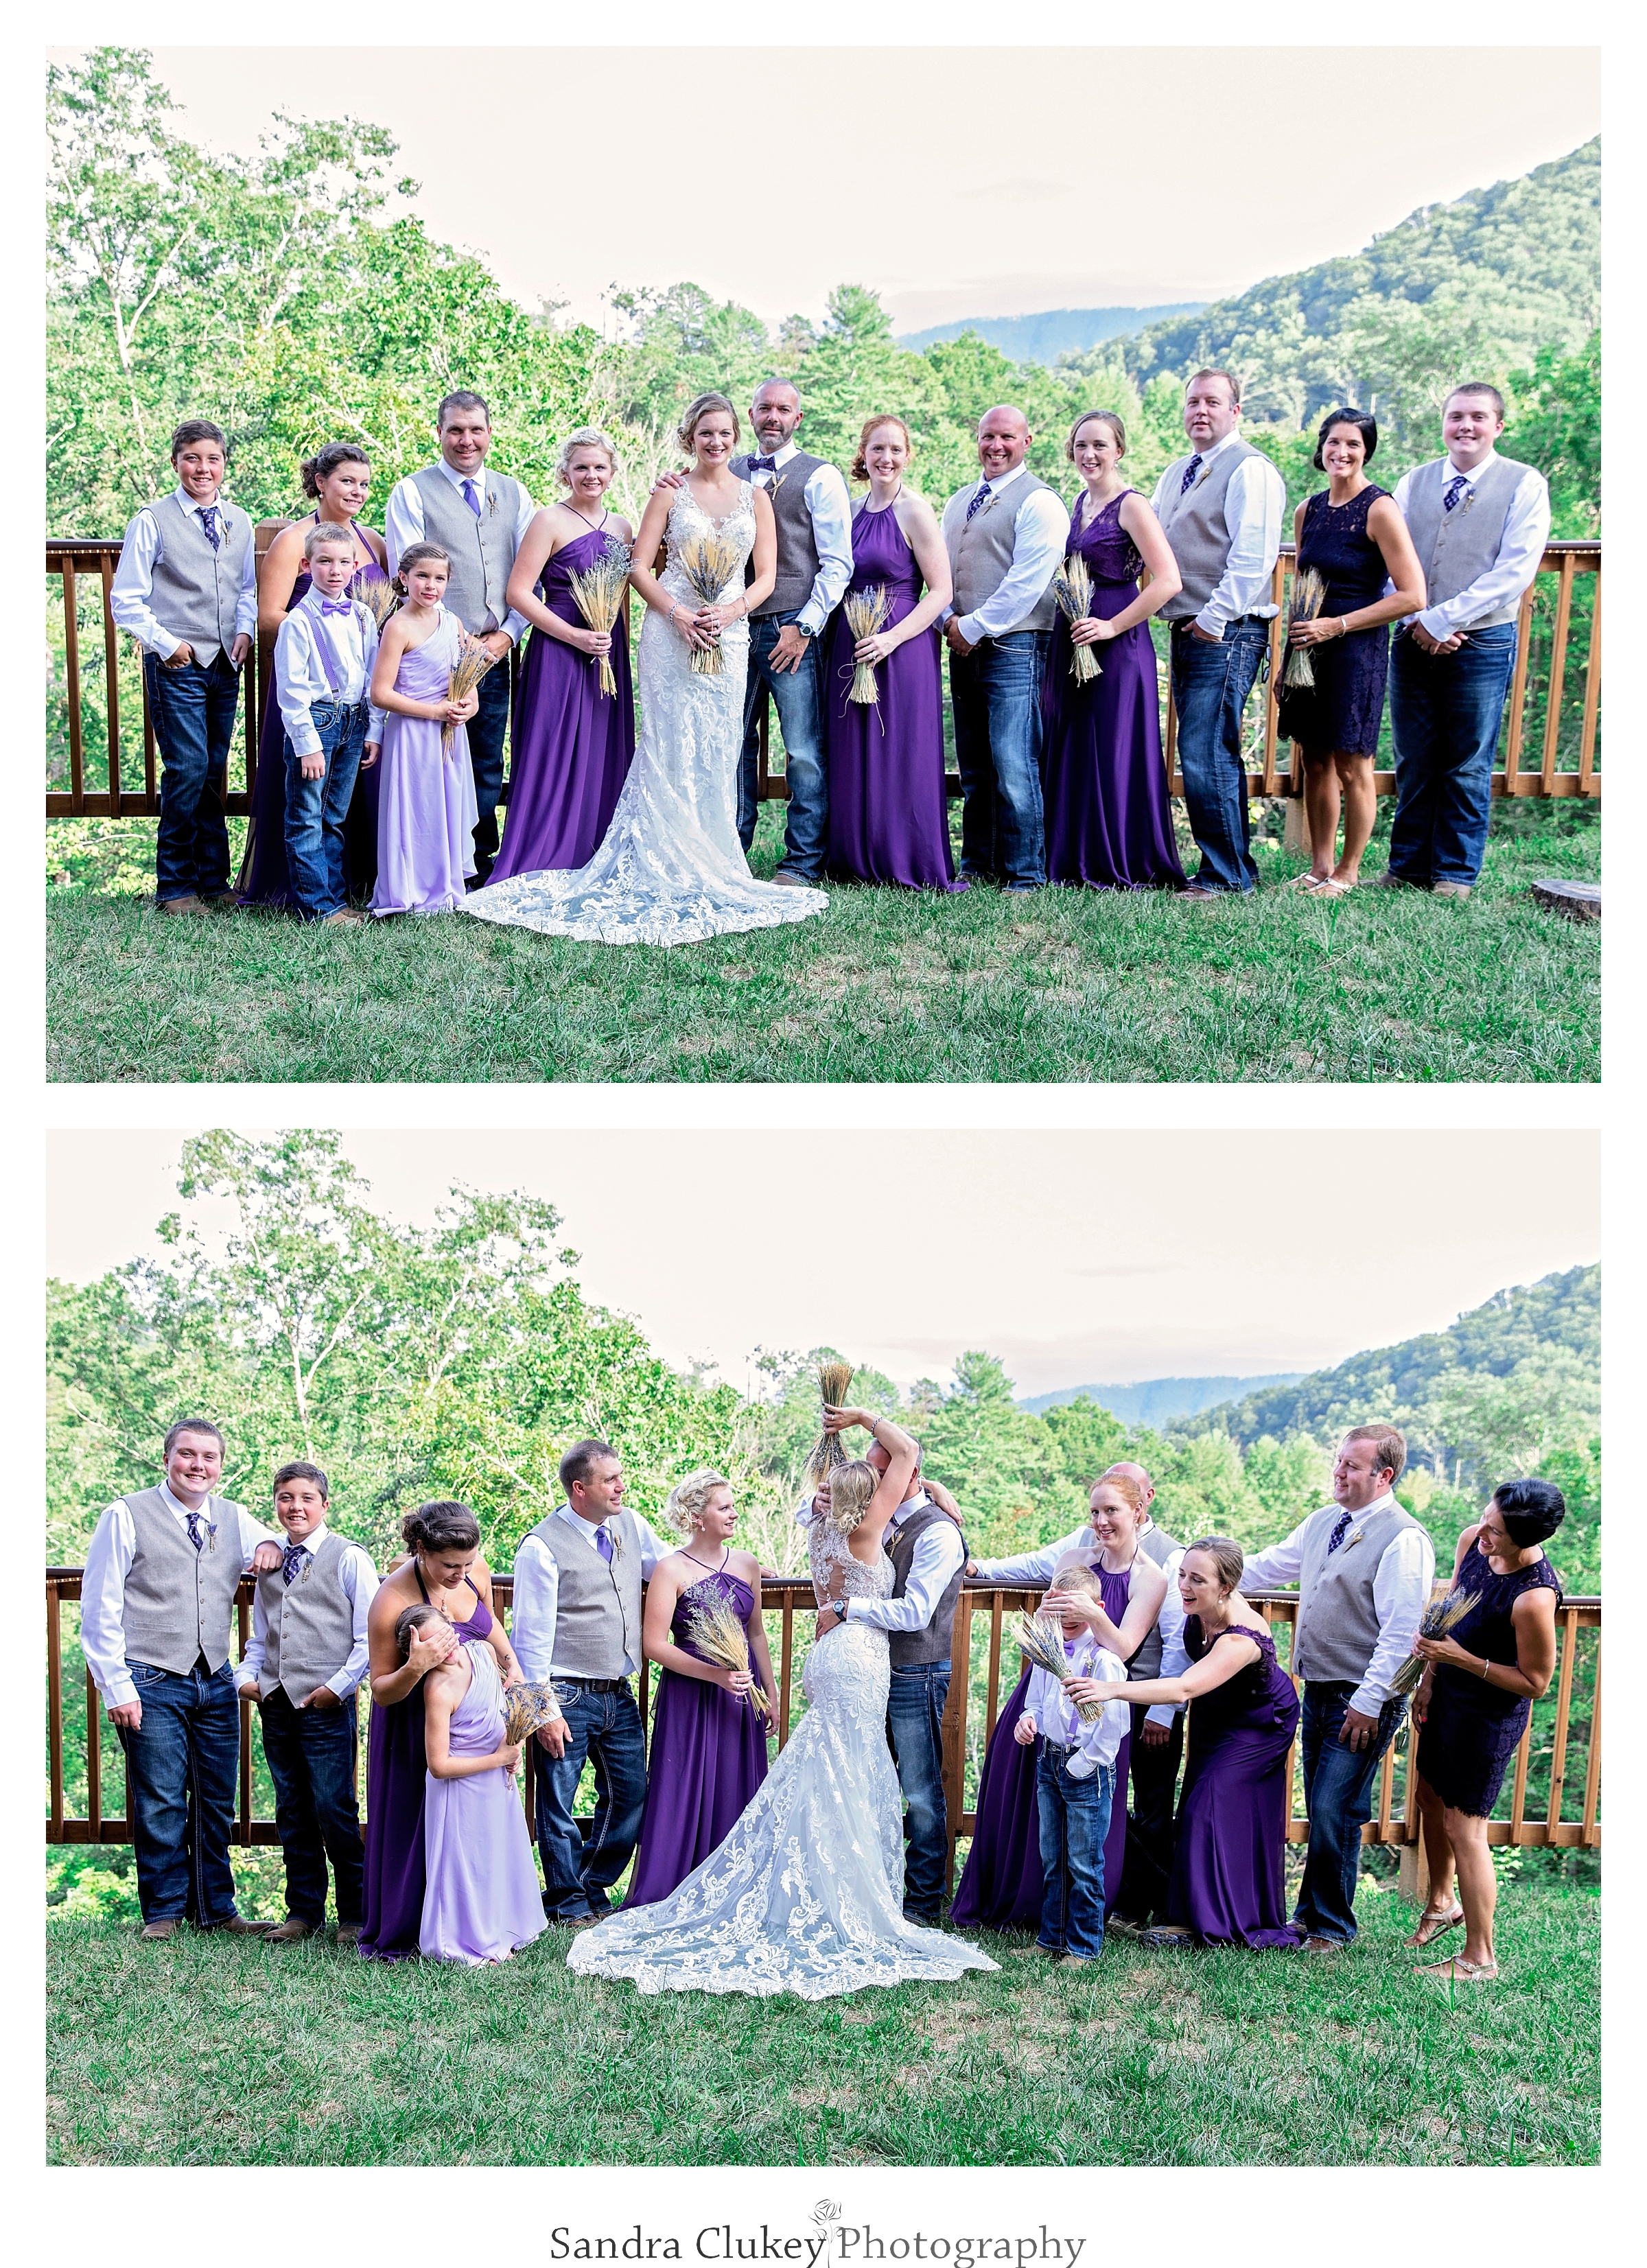 The happy wedding party